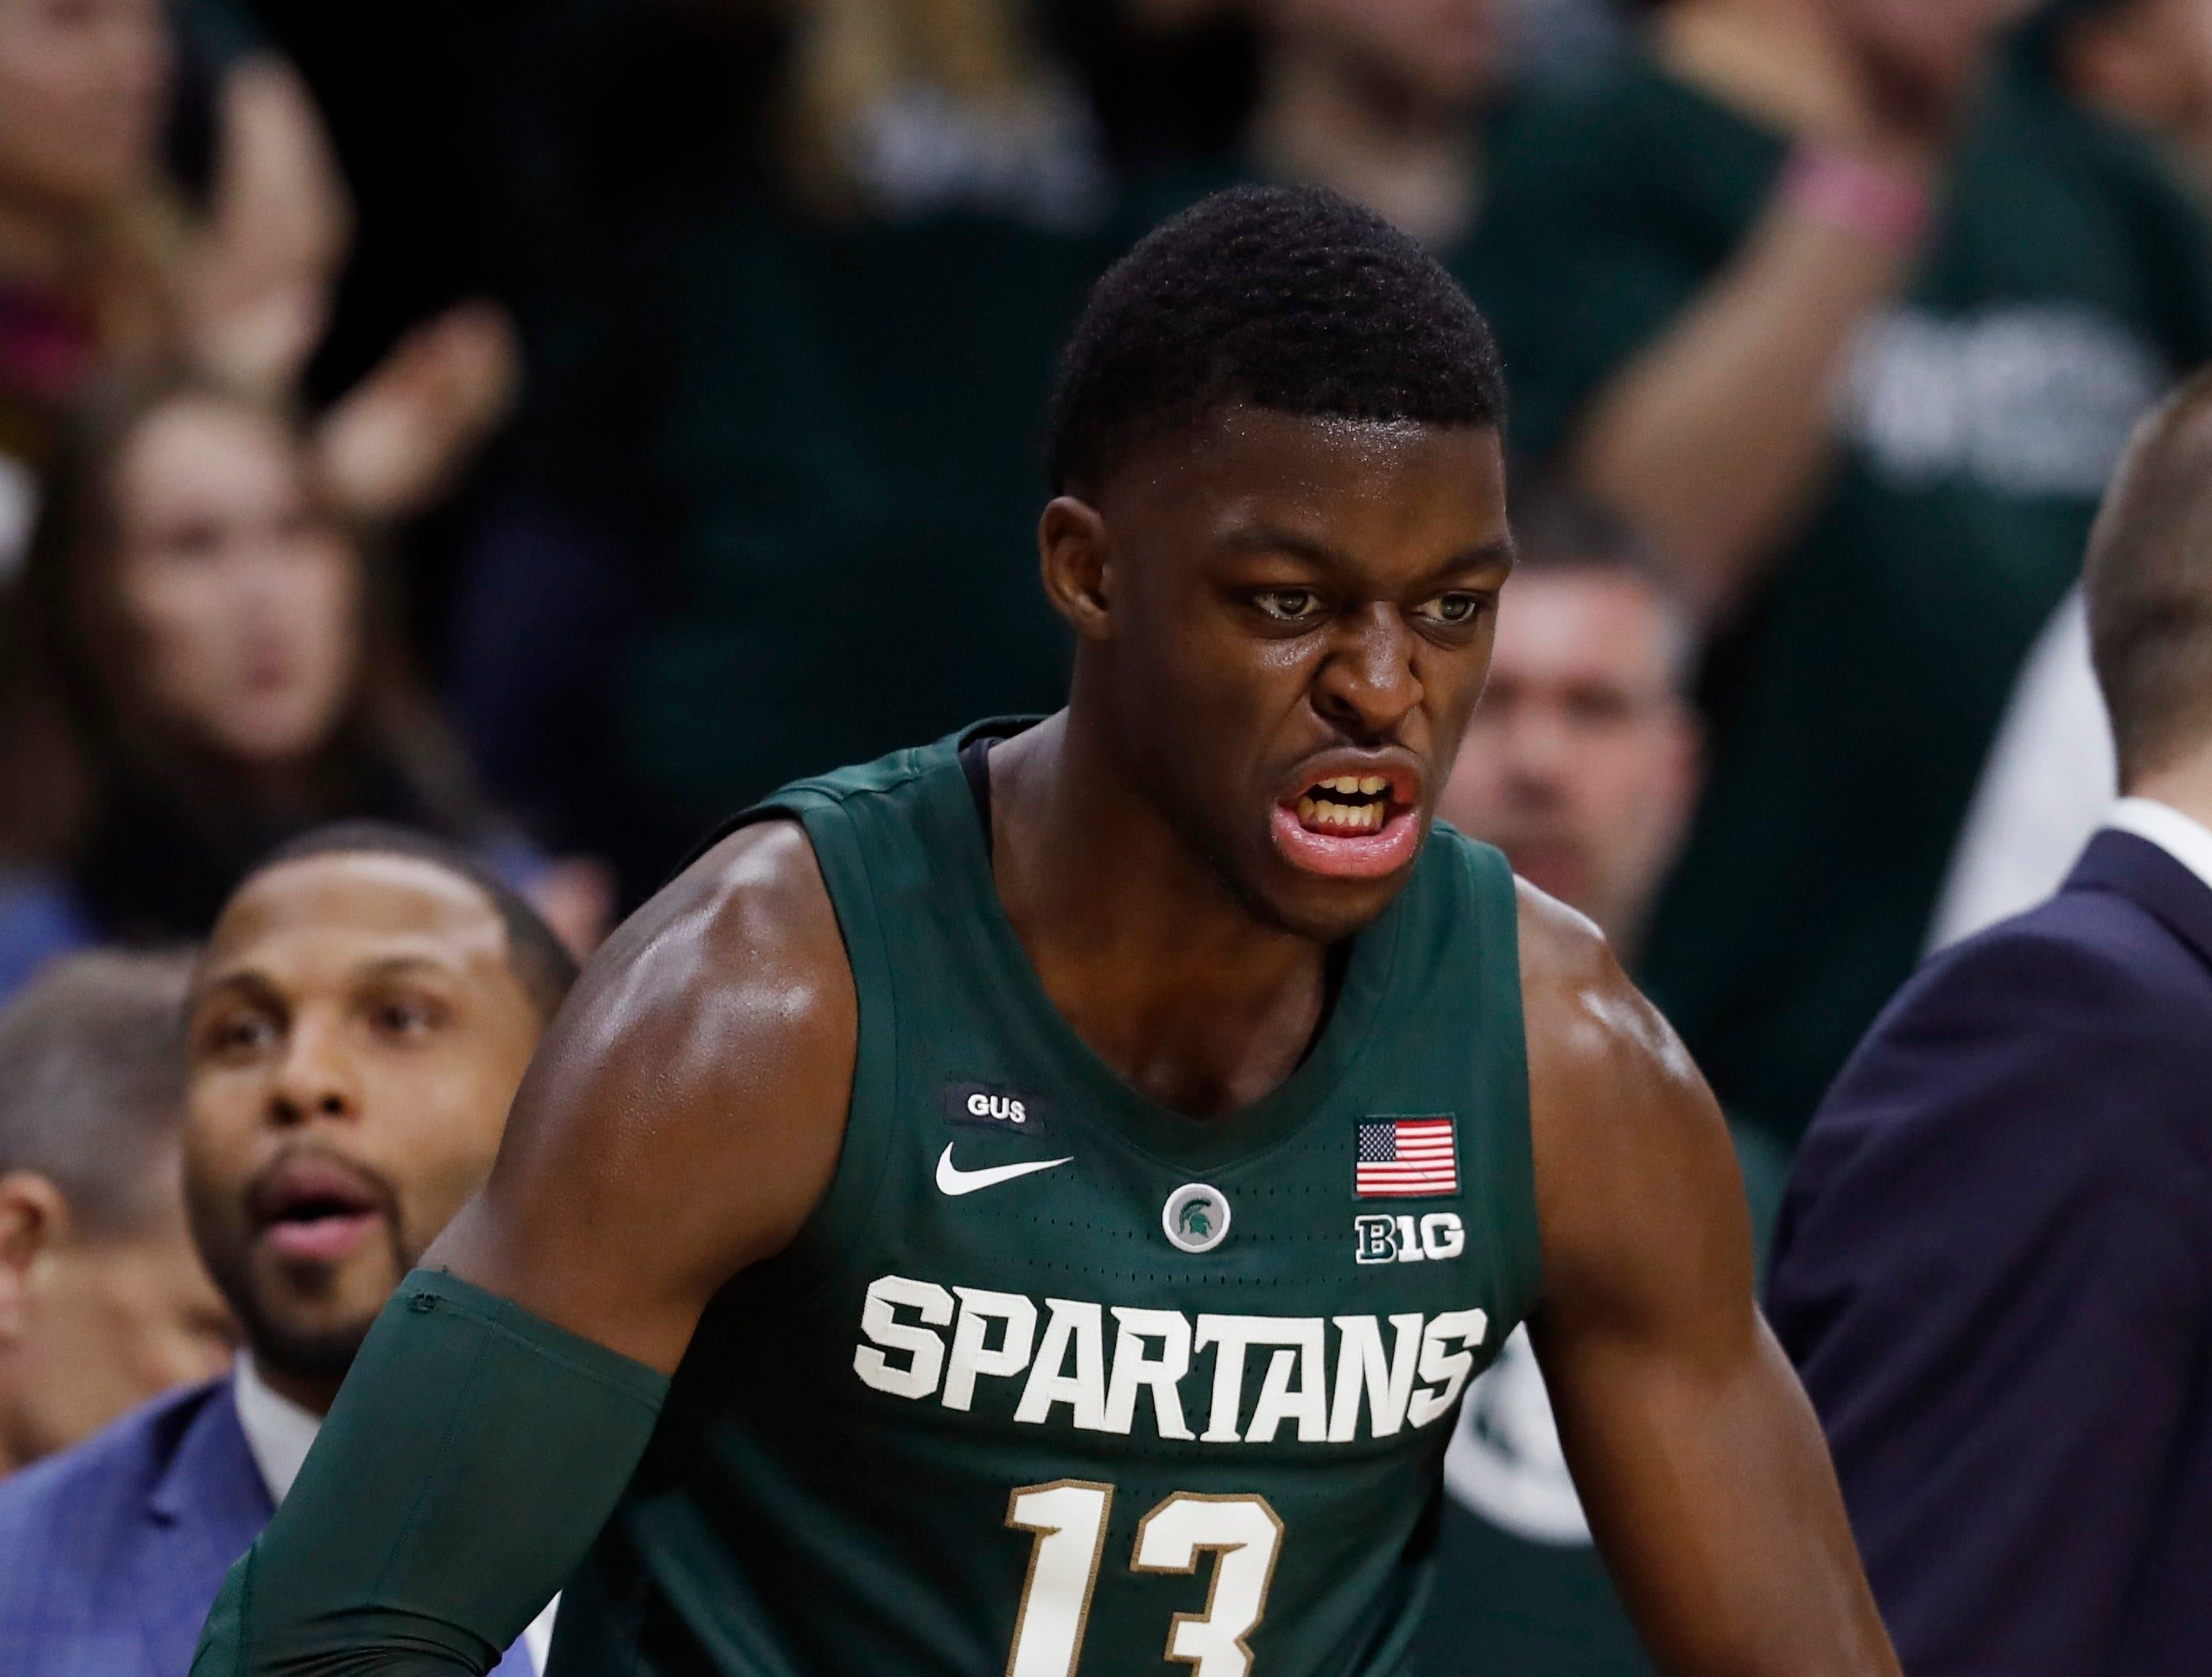 Michigan State forward Gabe Brown reacts during the closing seconds of the second half of an NCAA college basketball game against Nebraska, Tuesday, March 5, 2019, in East Lansing, Mich.